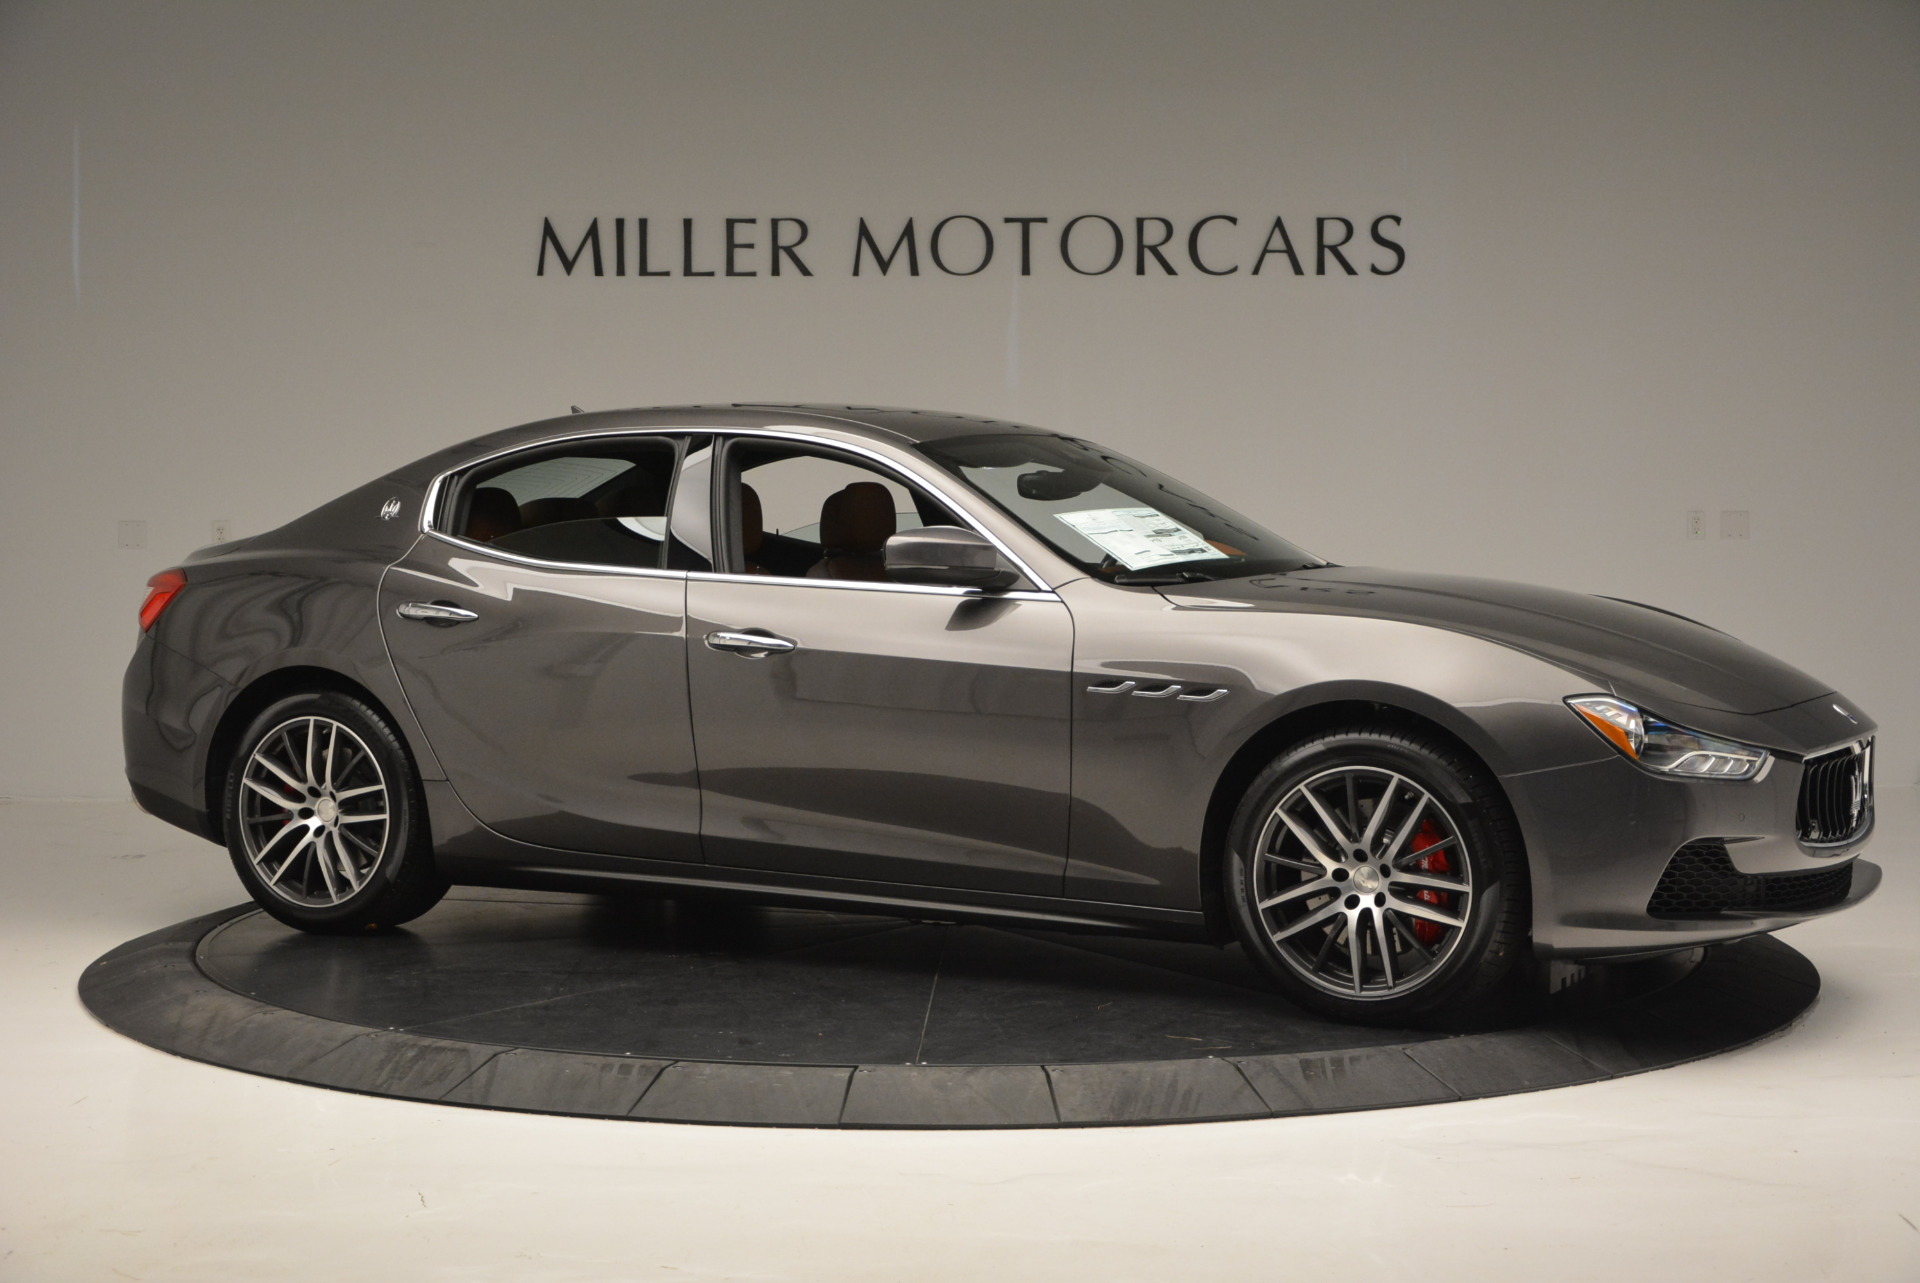 New 2017 Maserati Ghibli S Q4 For Sale In Greenwich, CT 573_p10